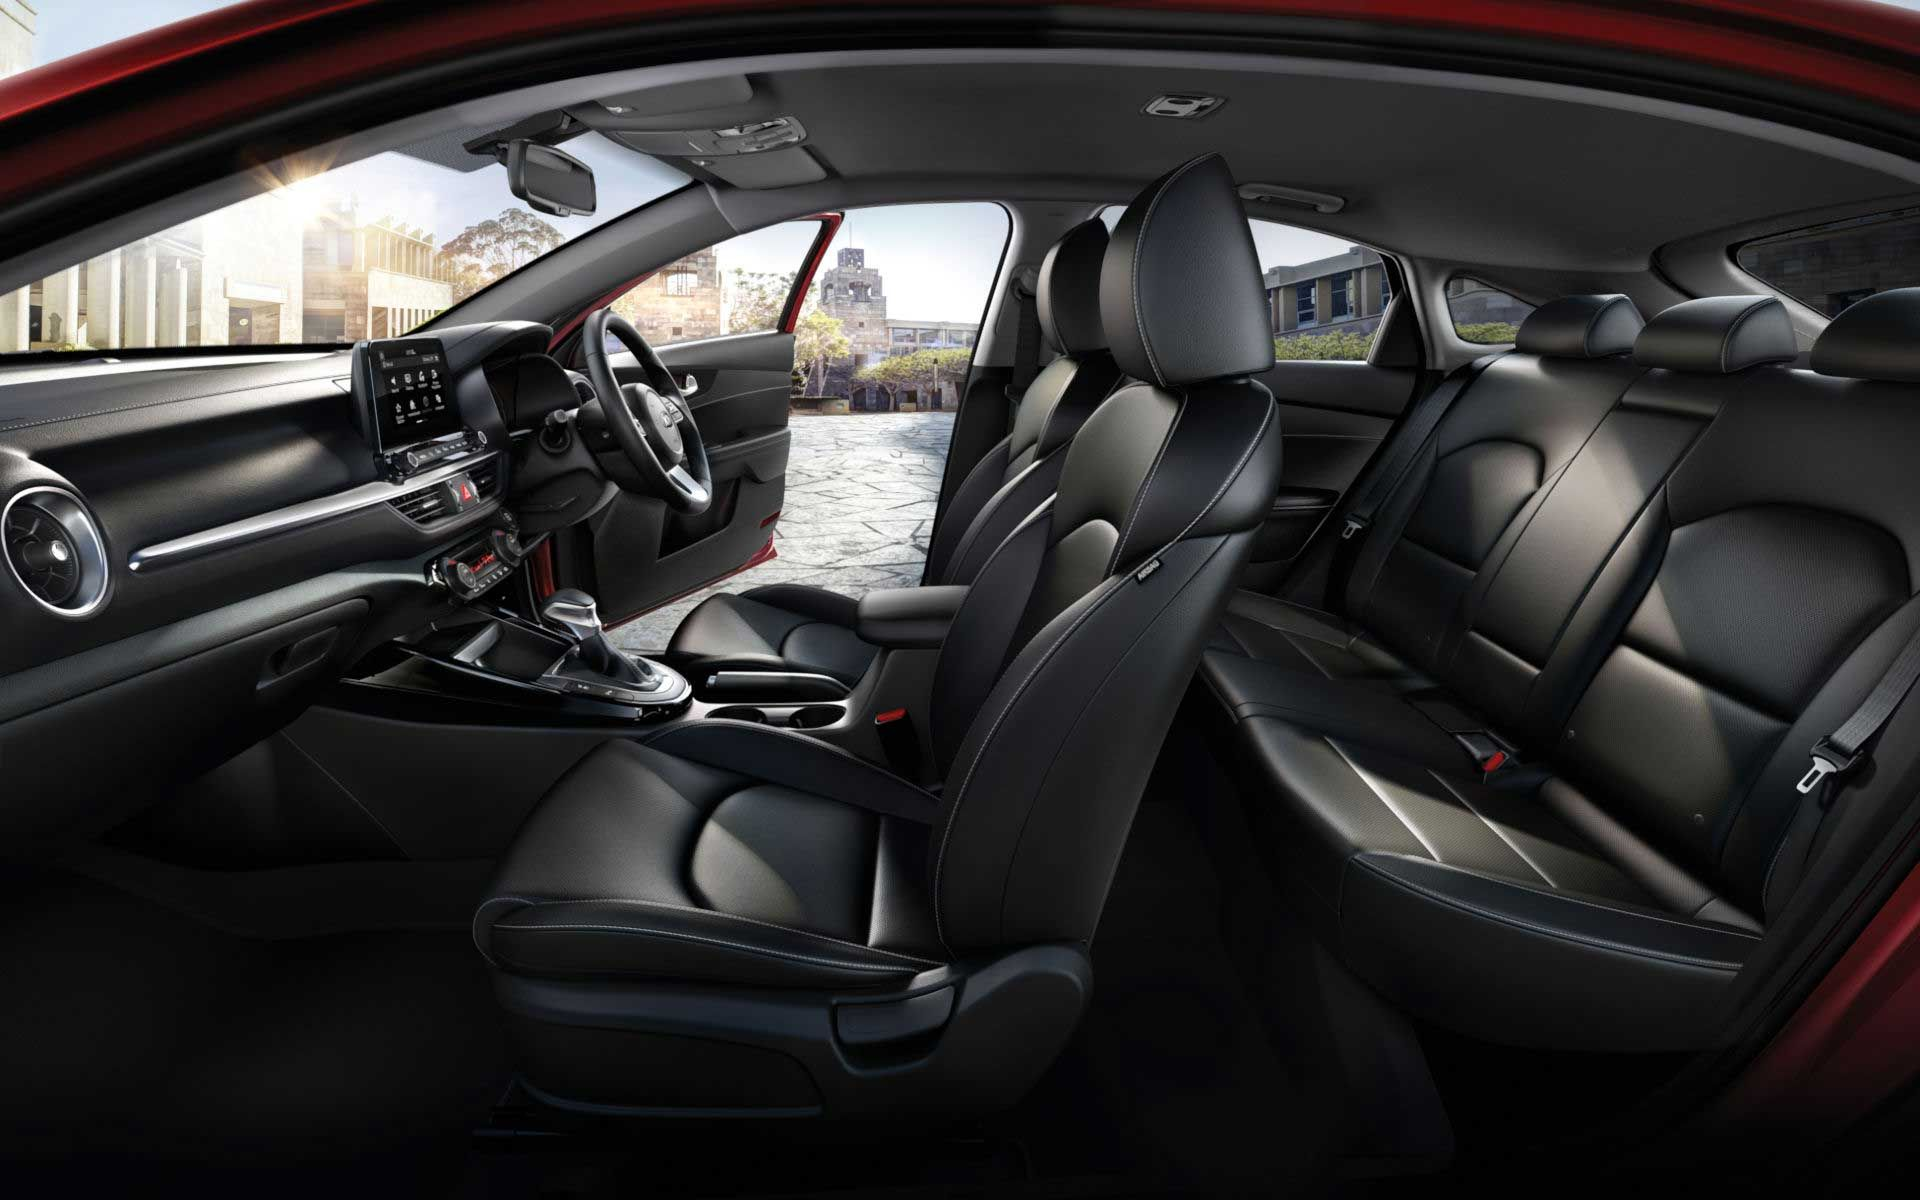 kia-cerato-hatch-interior-side